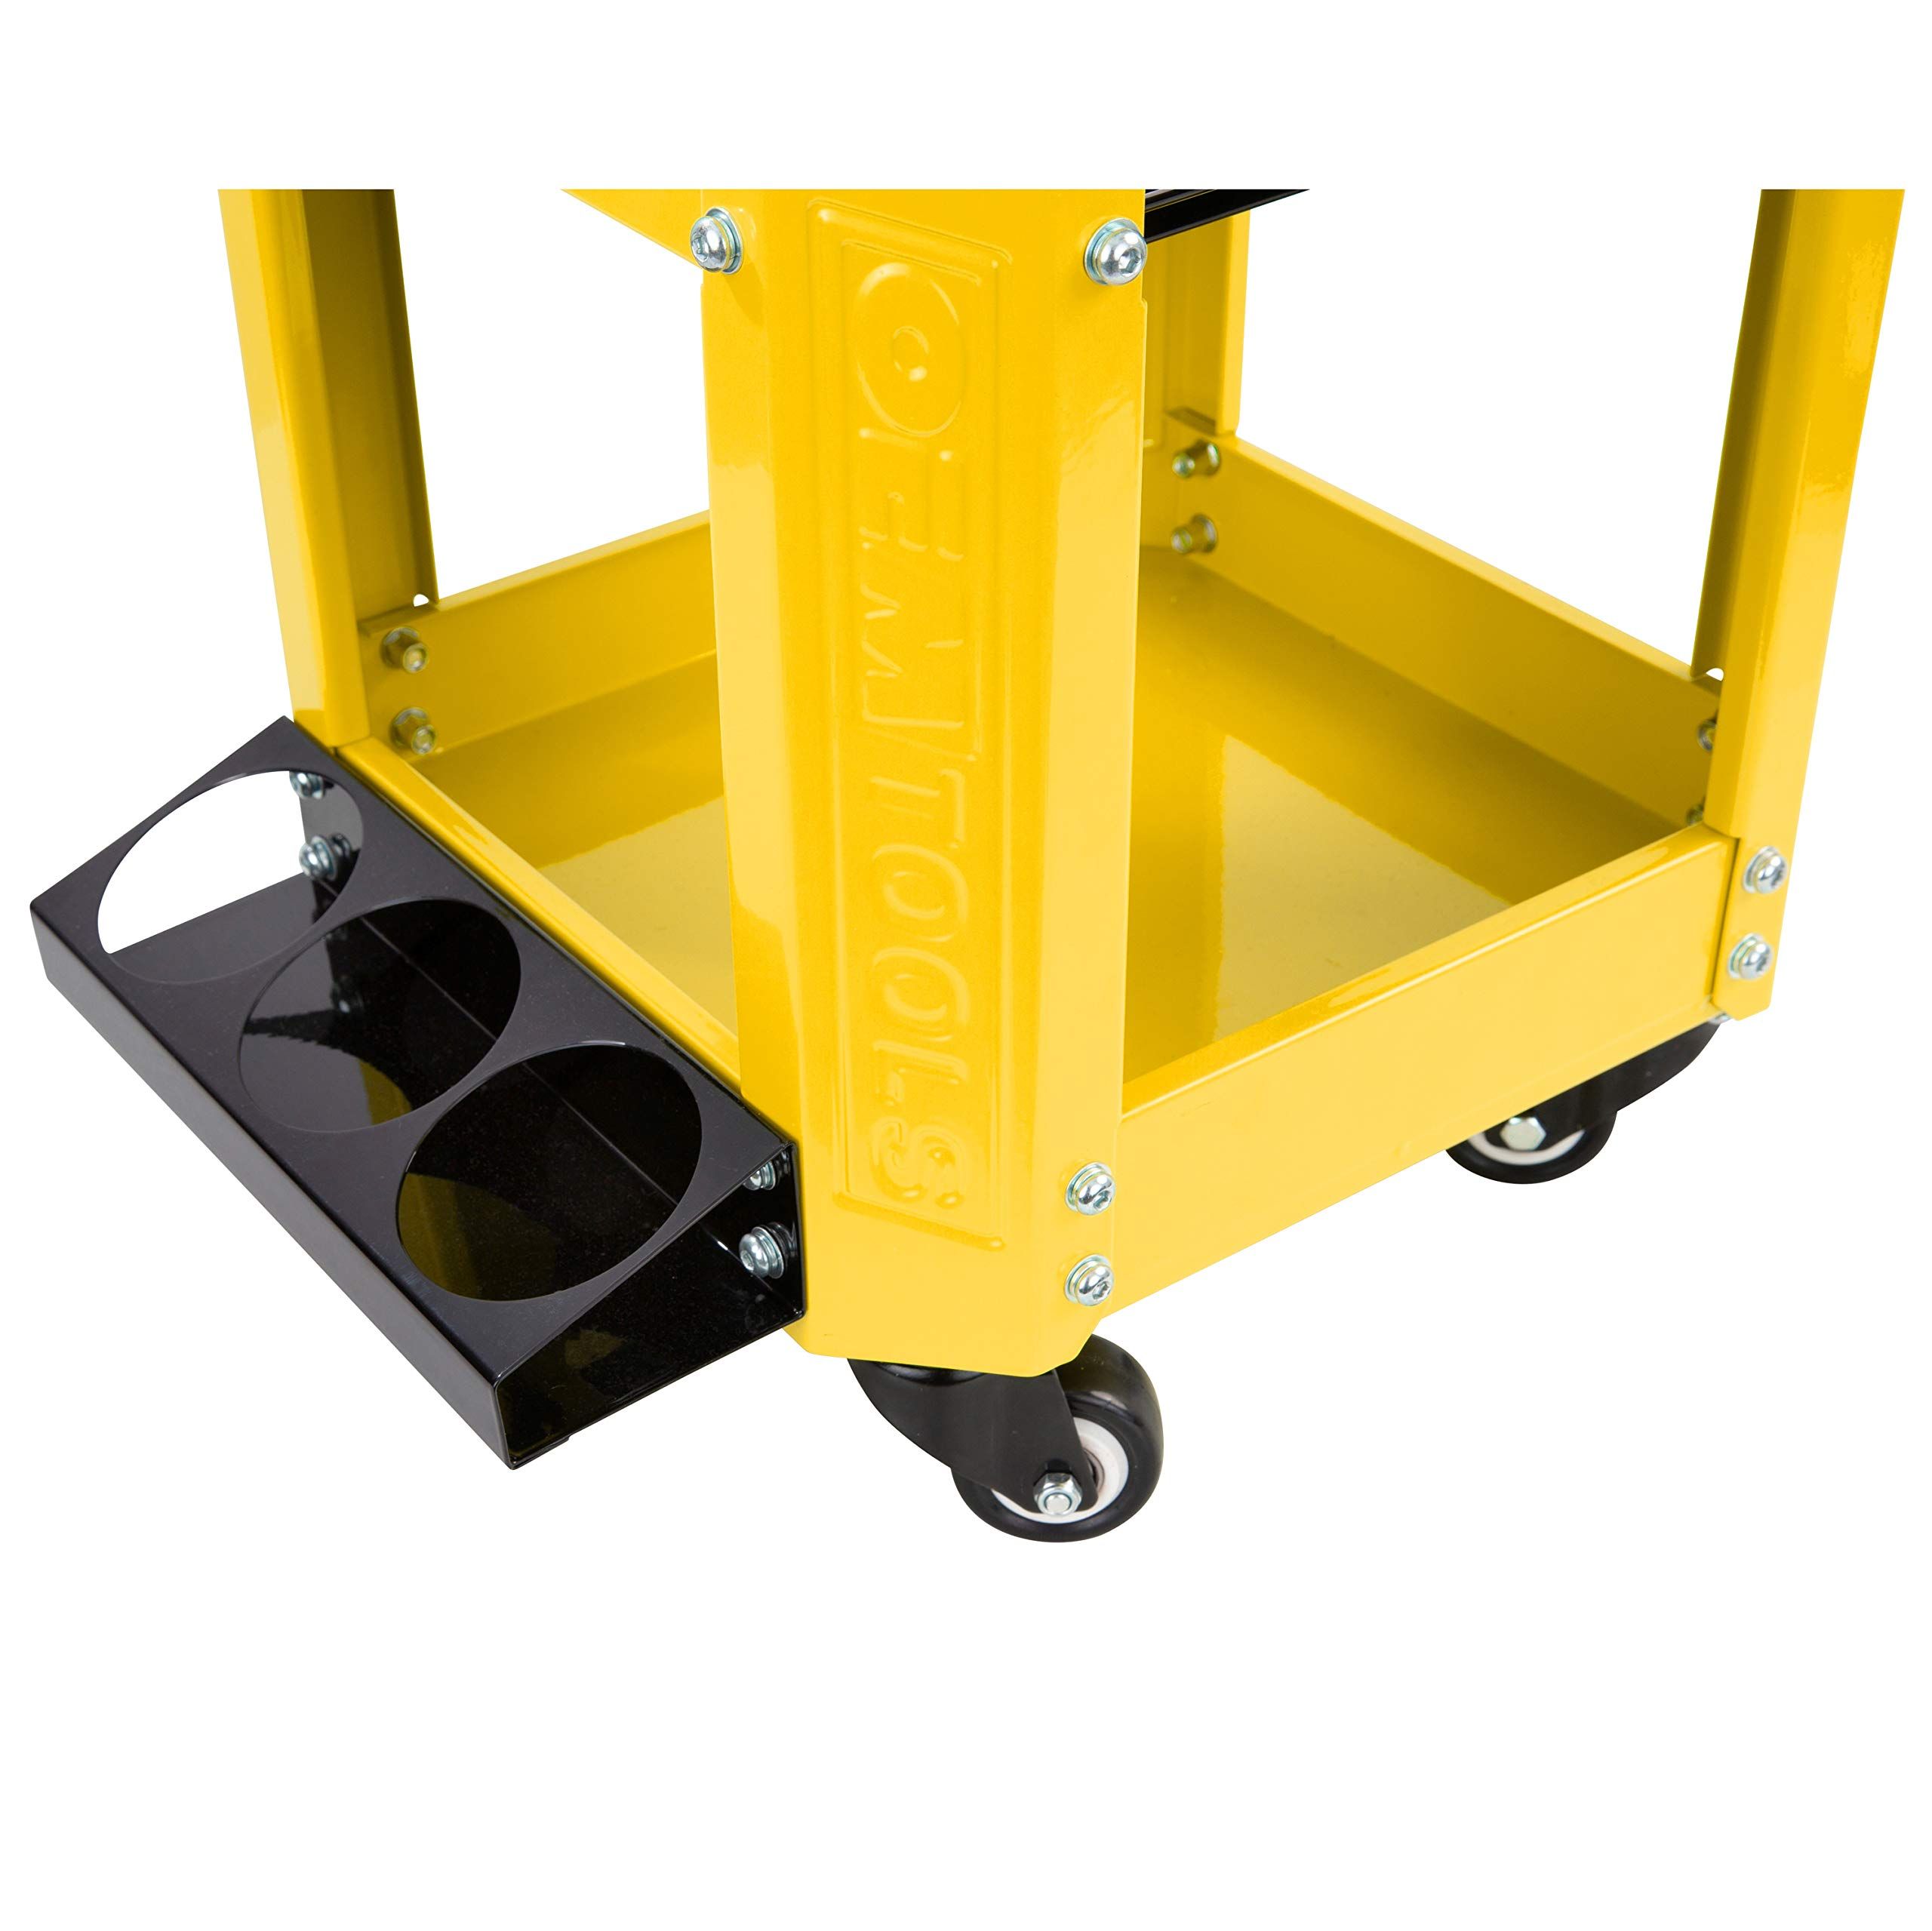 OEMTOOL 24999 Yellow Rolling Workshop Creeper Seat with 2 Tool Storage Drawers Under Seat Parts Storage Can Holders by OEMTOOLS (Image #5)